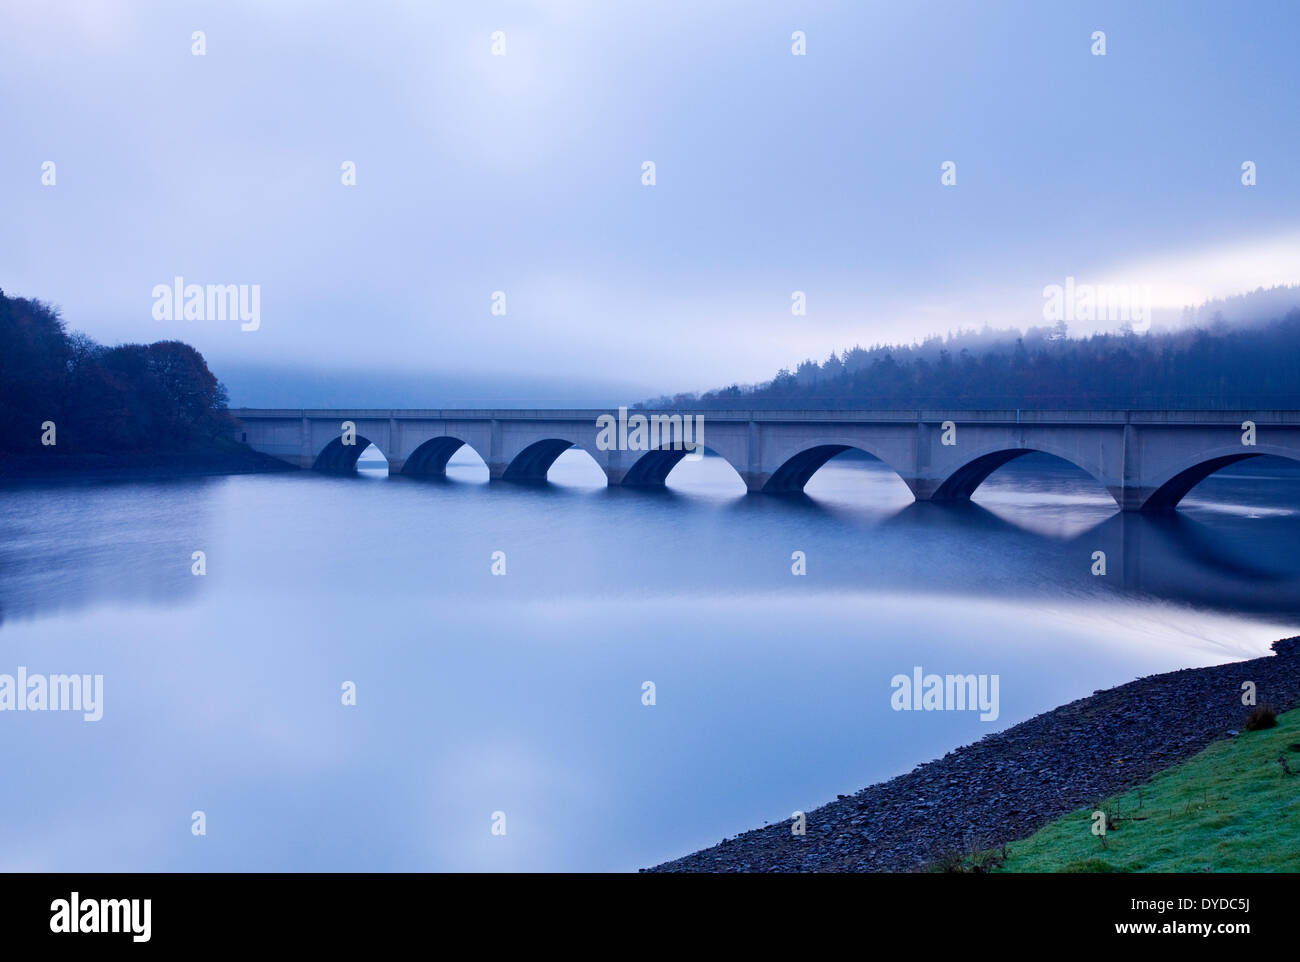 Ashopton Viaduct over Ladybower Reservoir in the Peak District on a foggy morning. - Stock Image